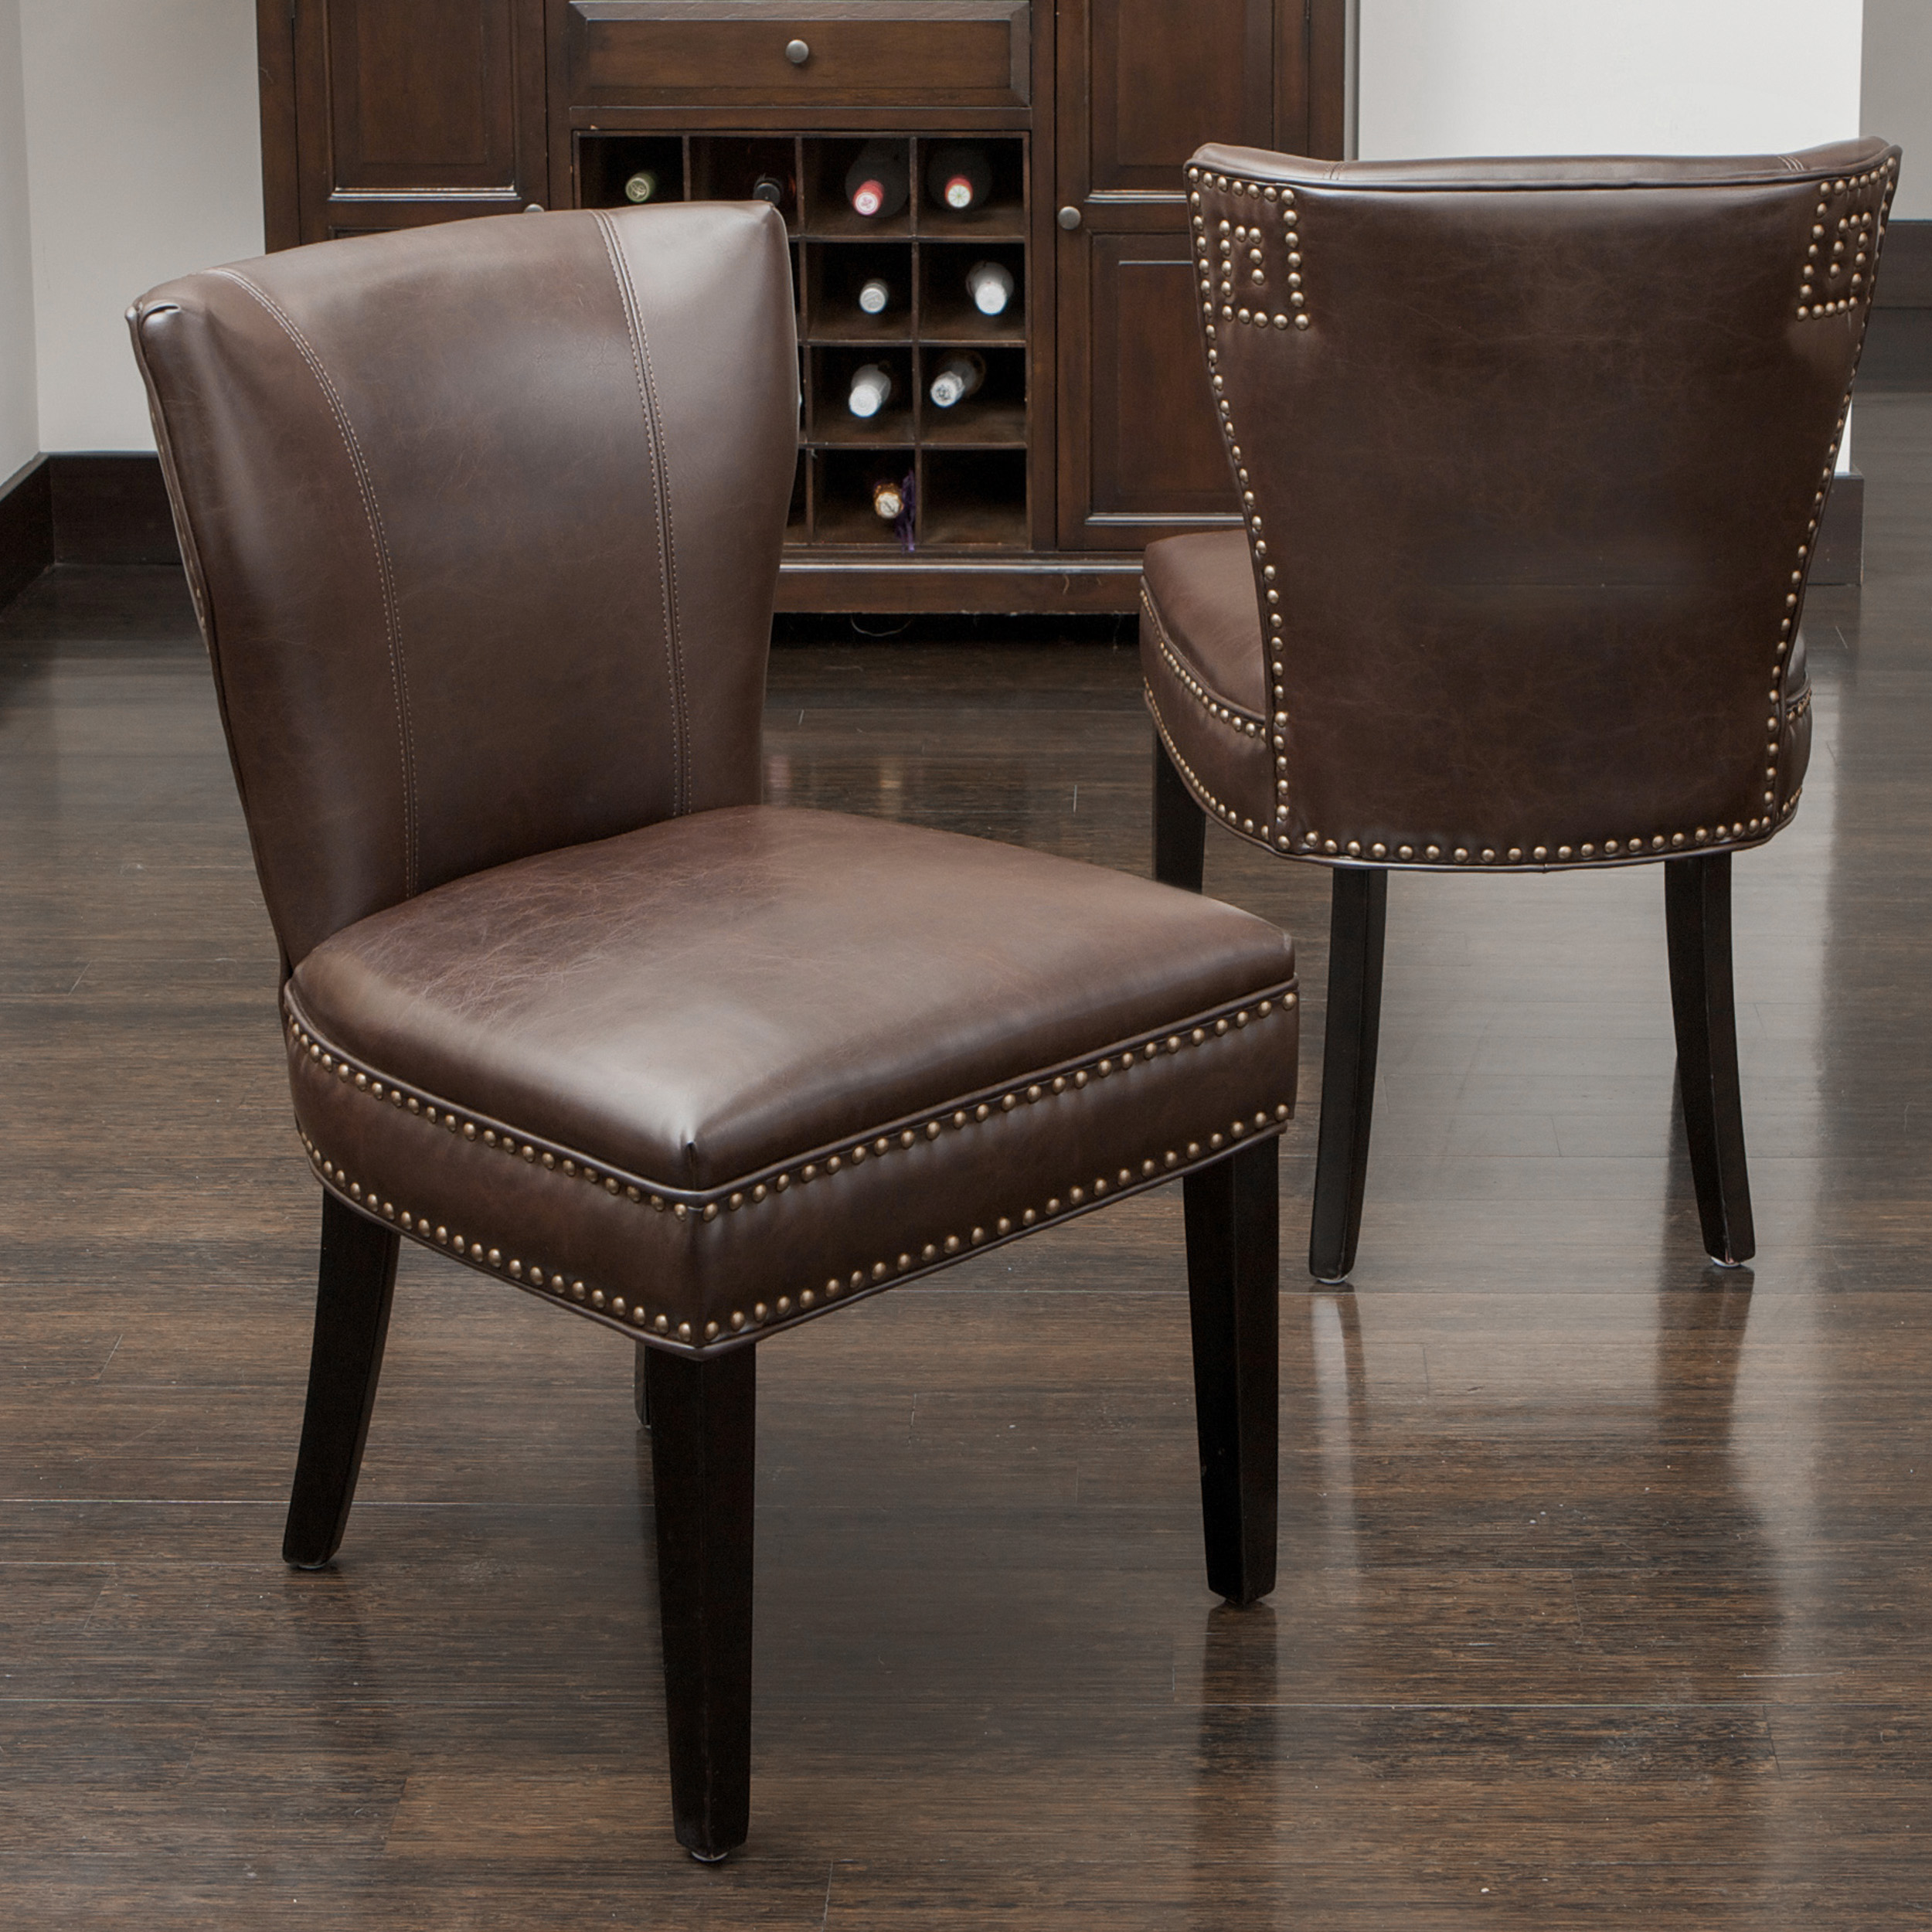 Best of the bunch the jackie brown jackie ocean blue for Brown leather dining room chairs